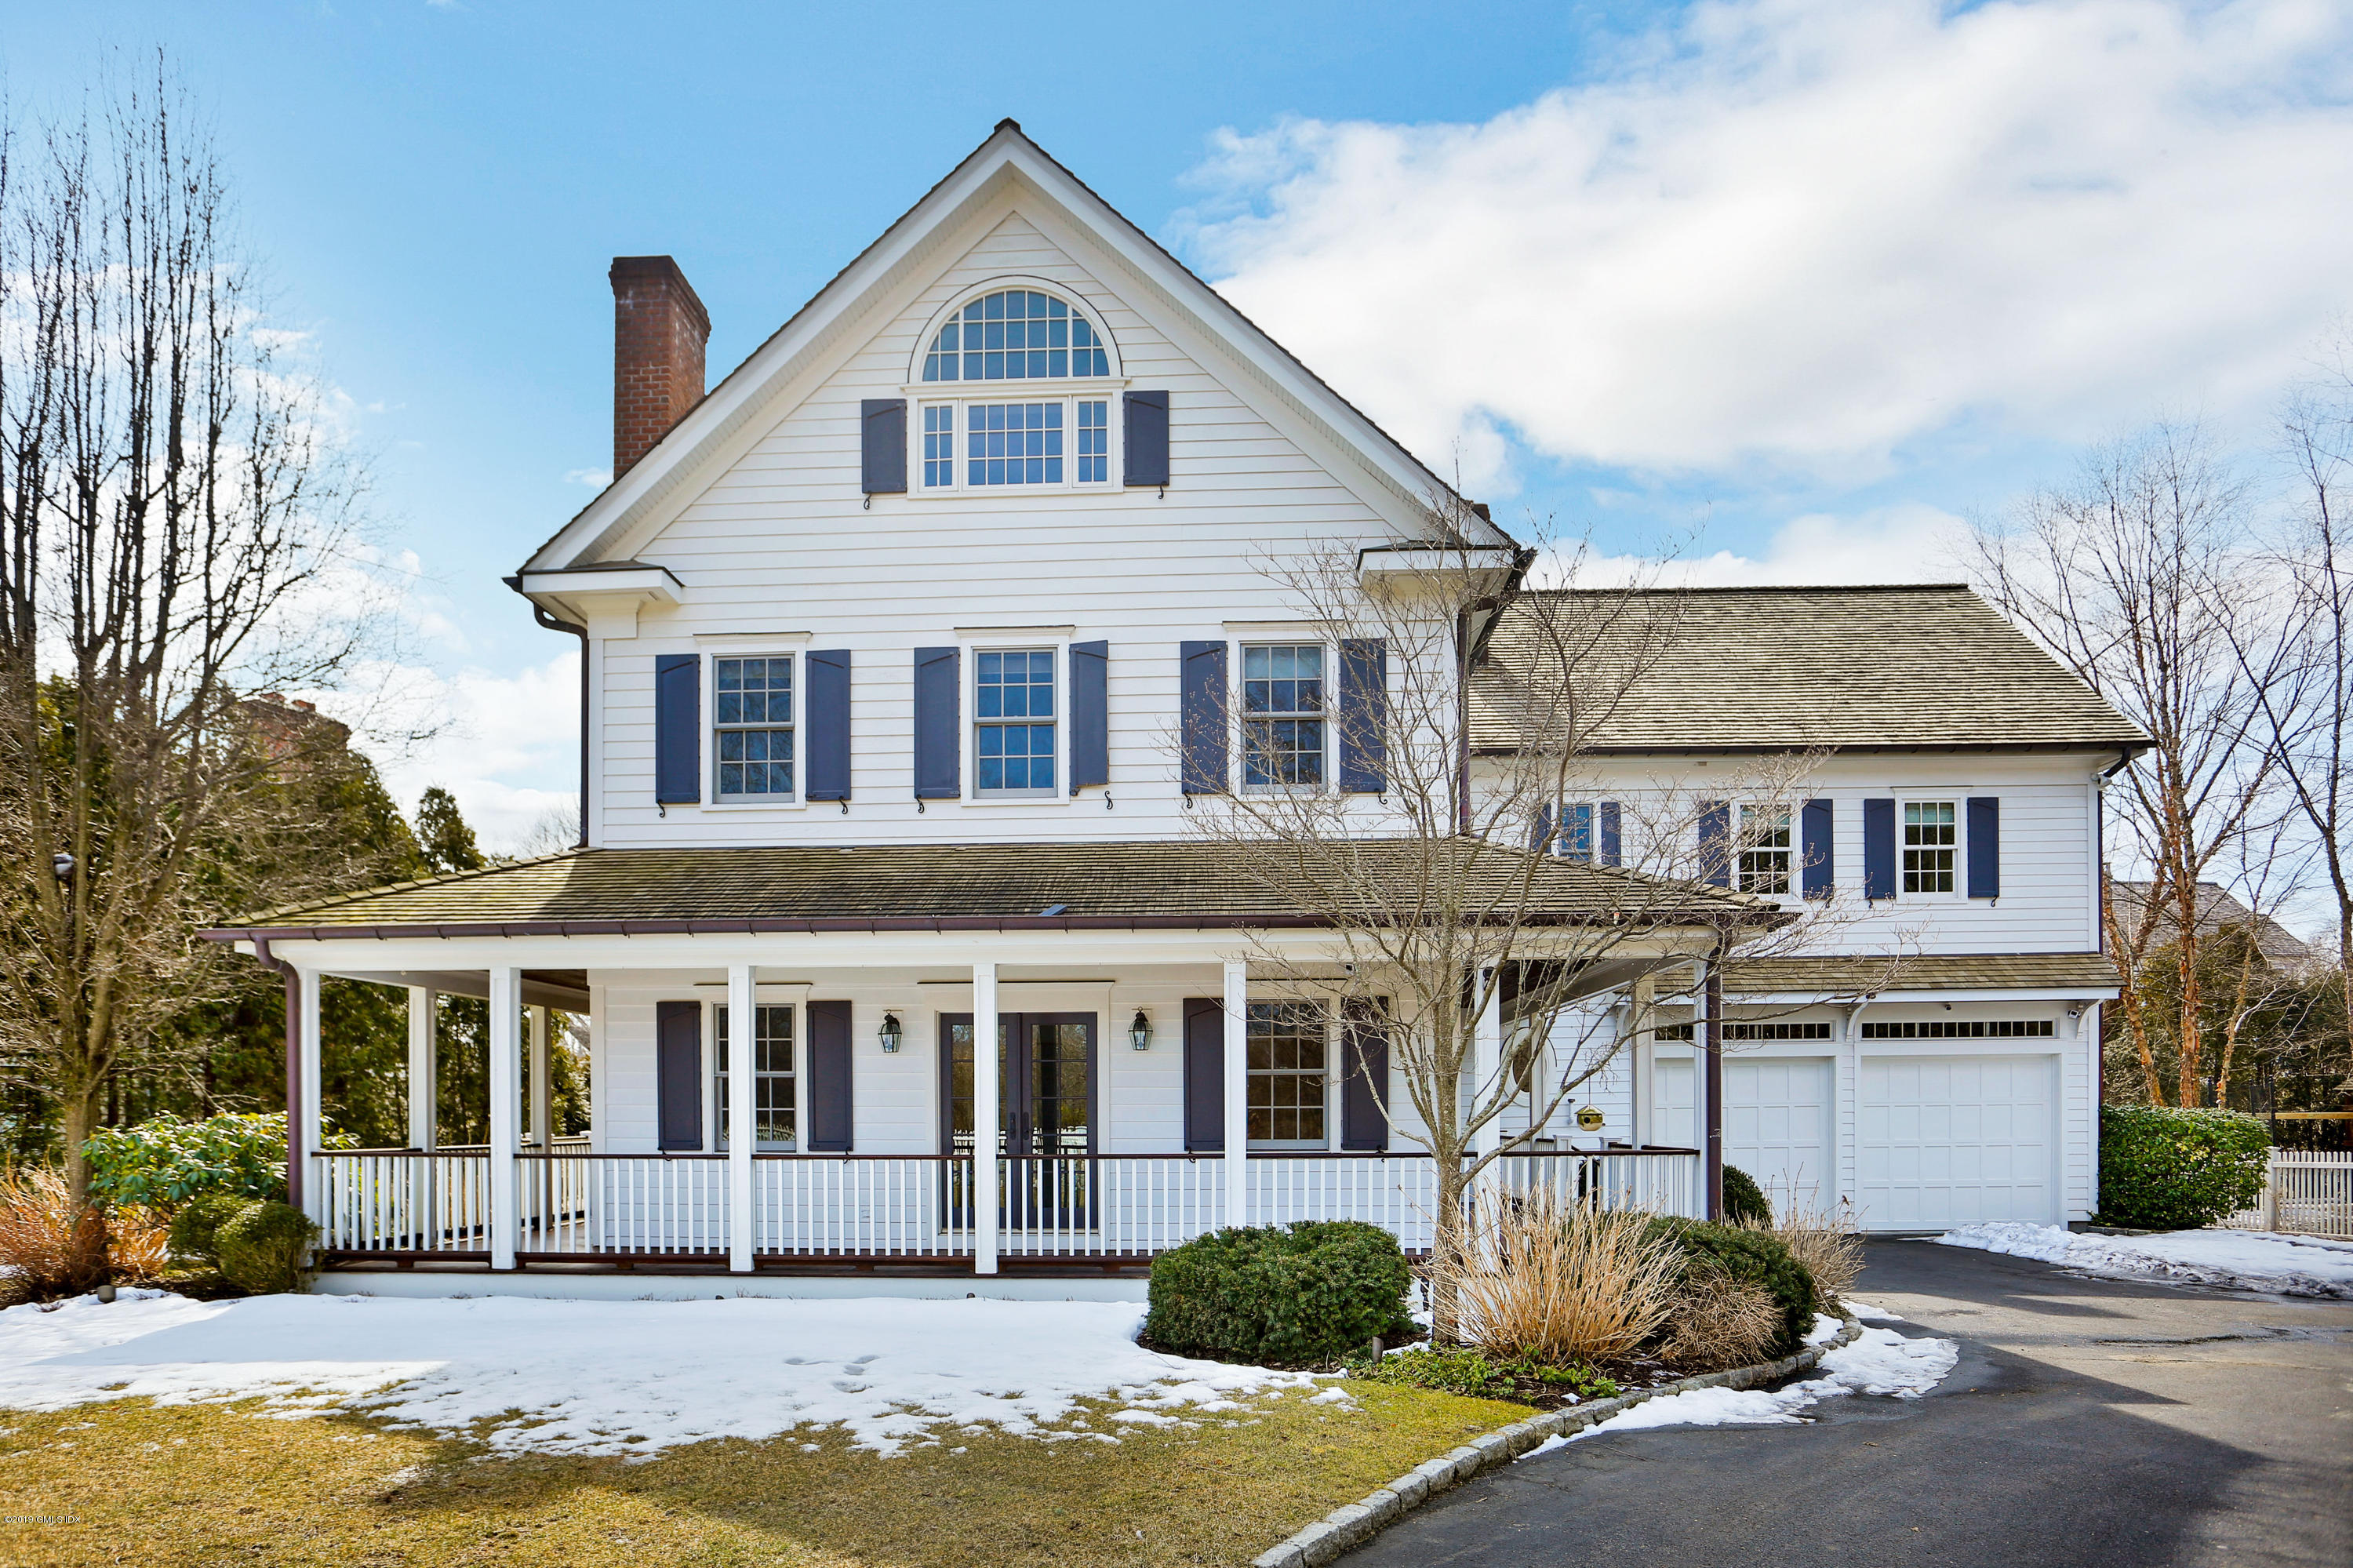 3 Tomac Lane,Old Greenwich,Connecticut 06870,5 Bedrooms Bedrooms,4 BathroomsBathrooms,Single family,Tomac,105829